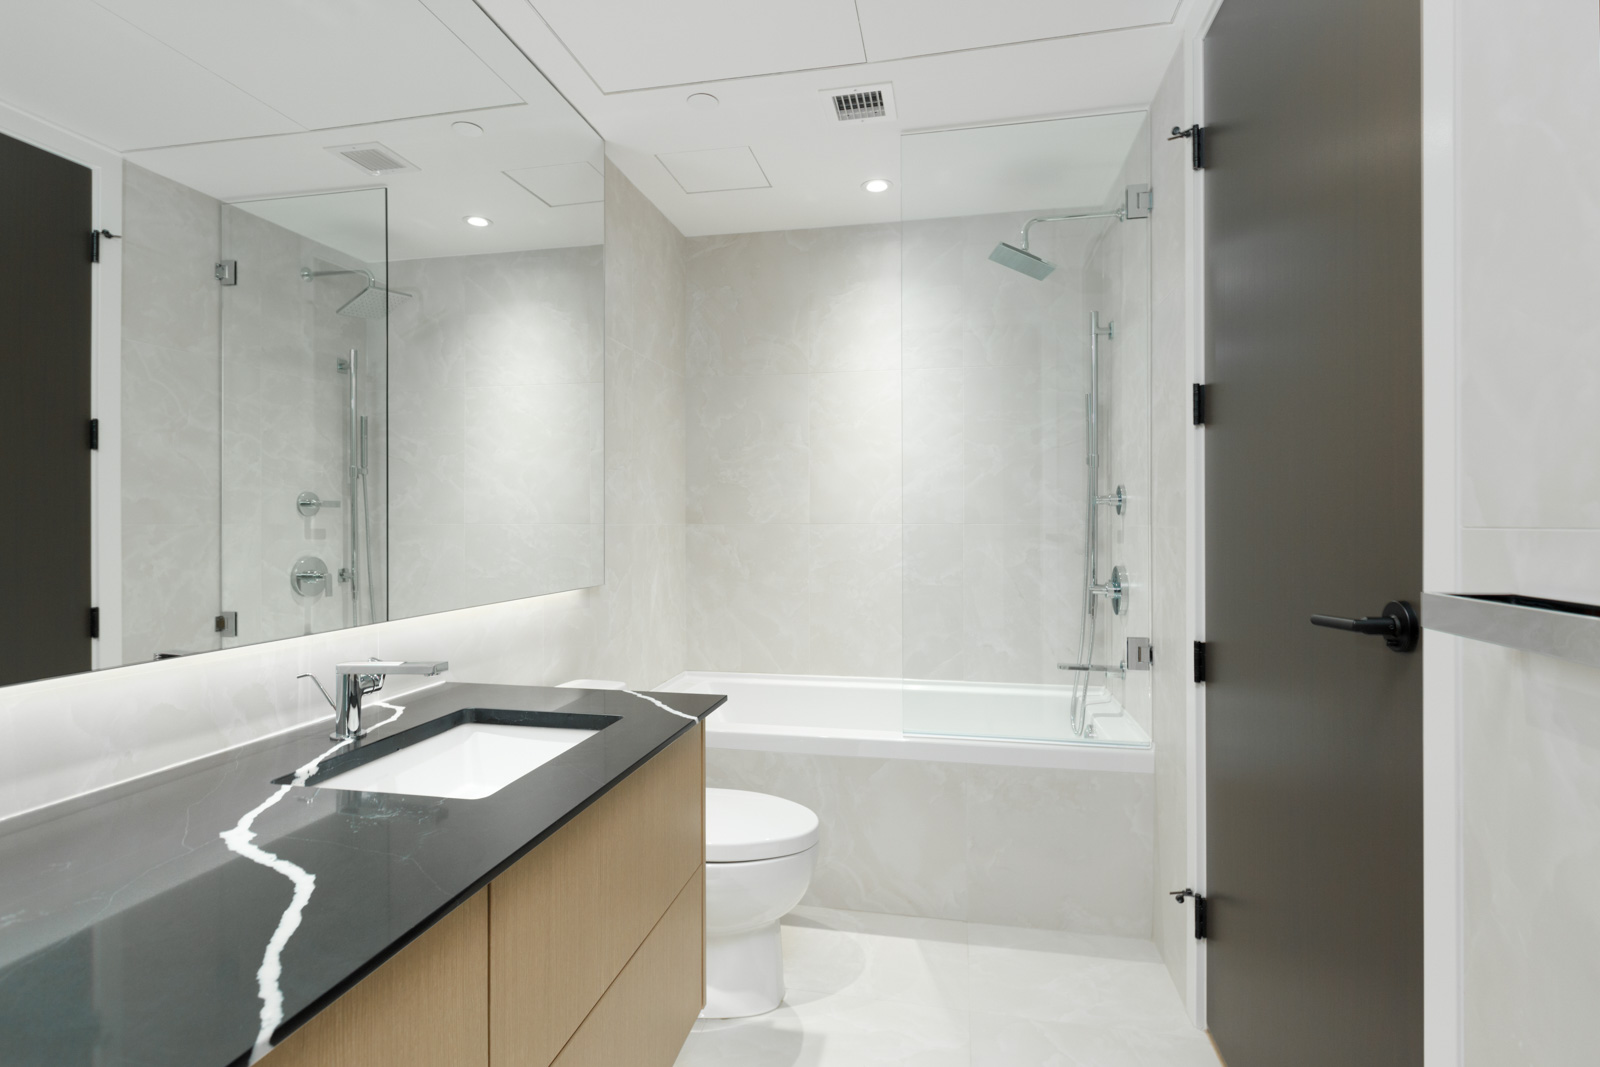 bathroom of vancouver condo managed by birds nest properties with sink and counter on left and toilet in middle and tub and shower in background with white tiling